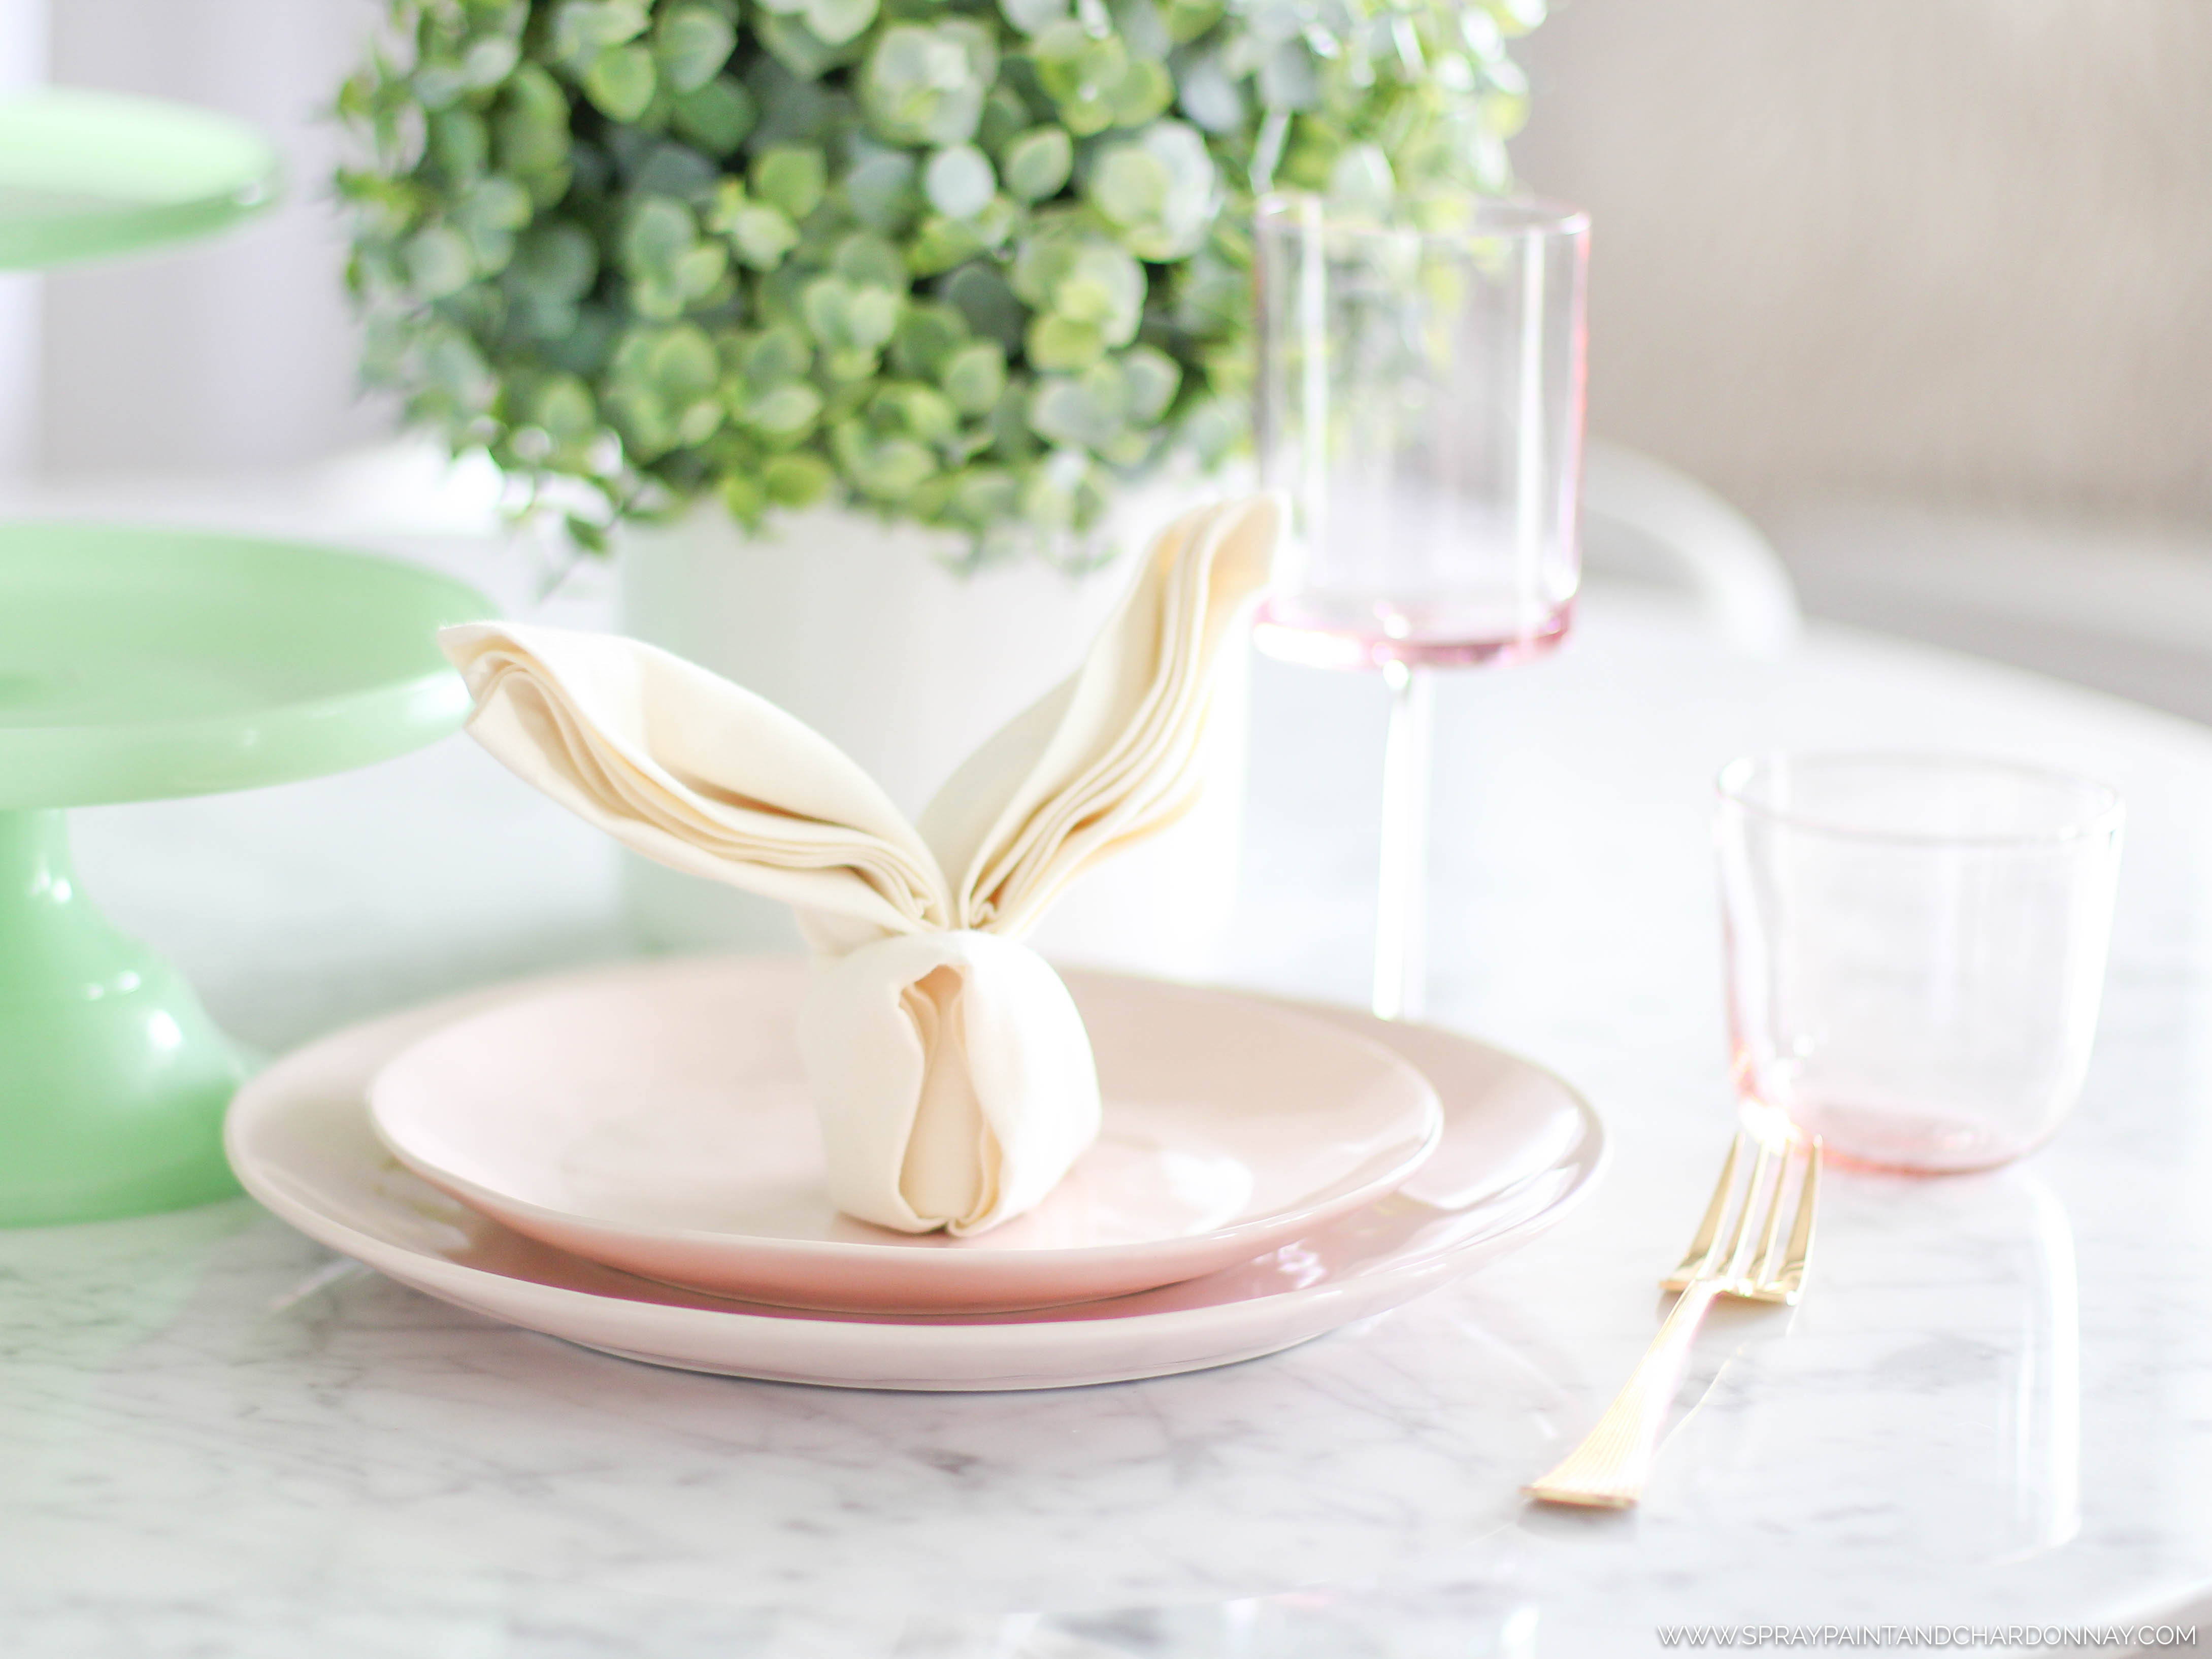 EASY EASTER ENTERTAINING | Spray Paint & Chardonnay